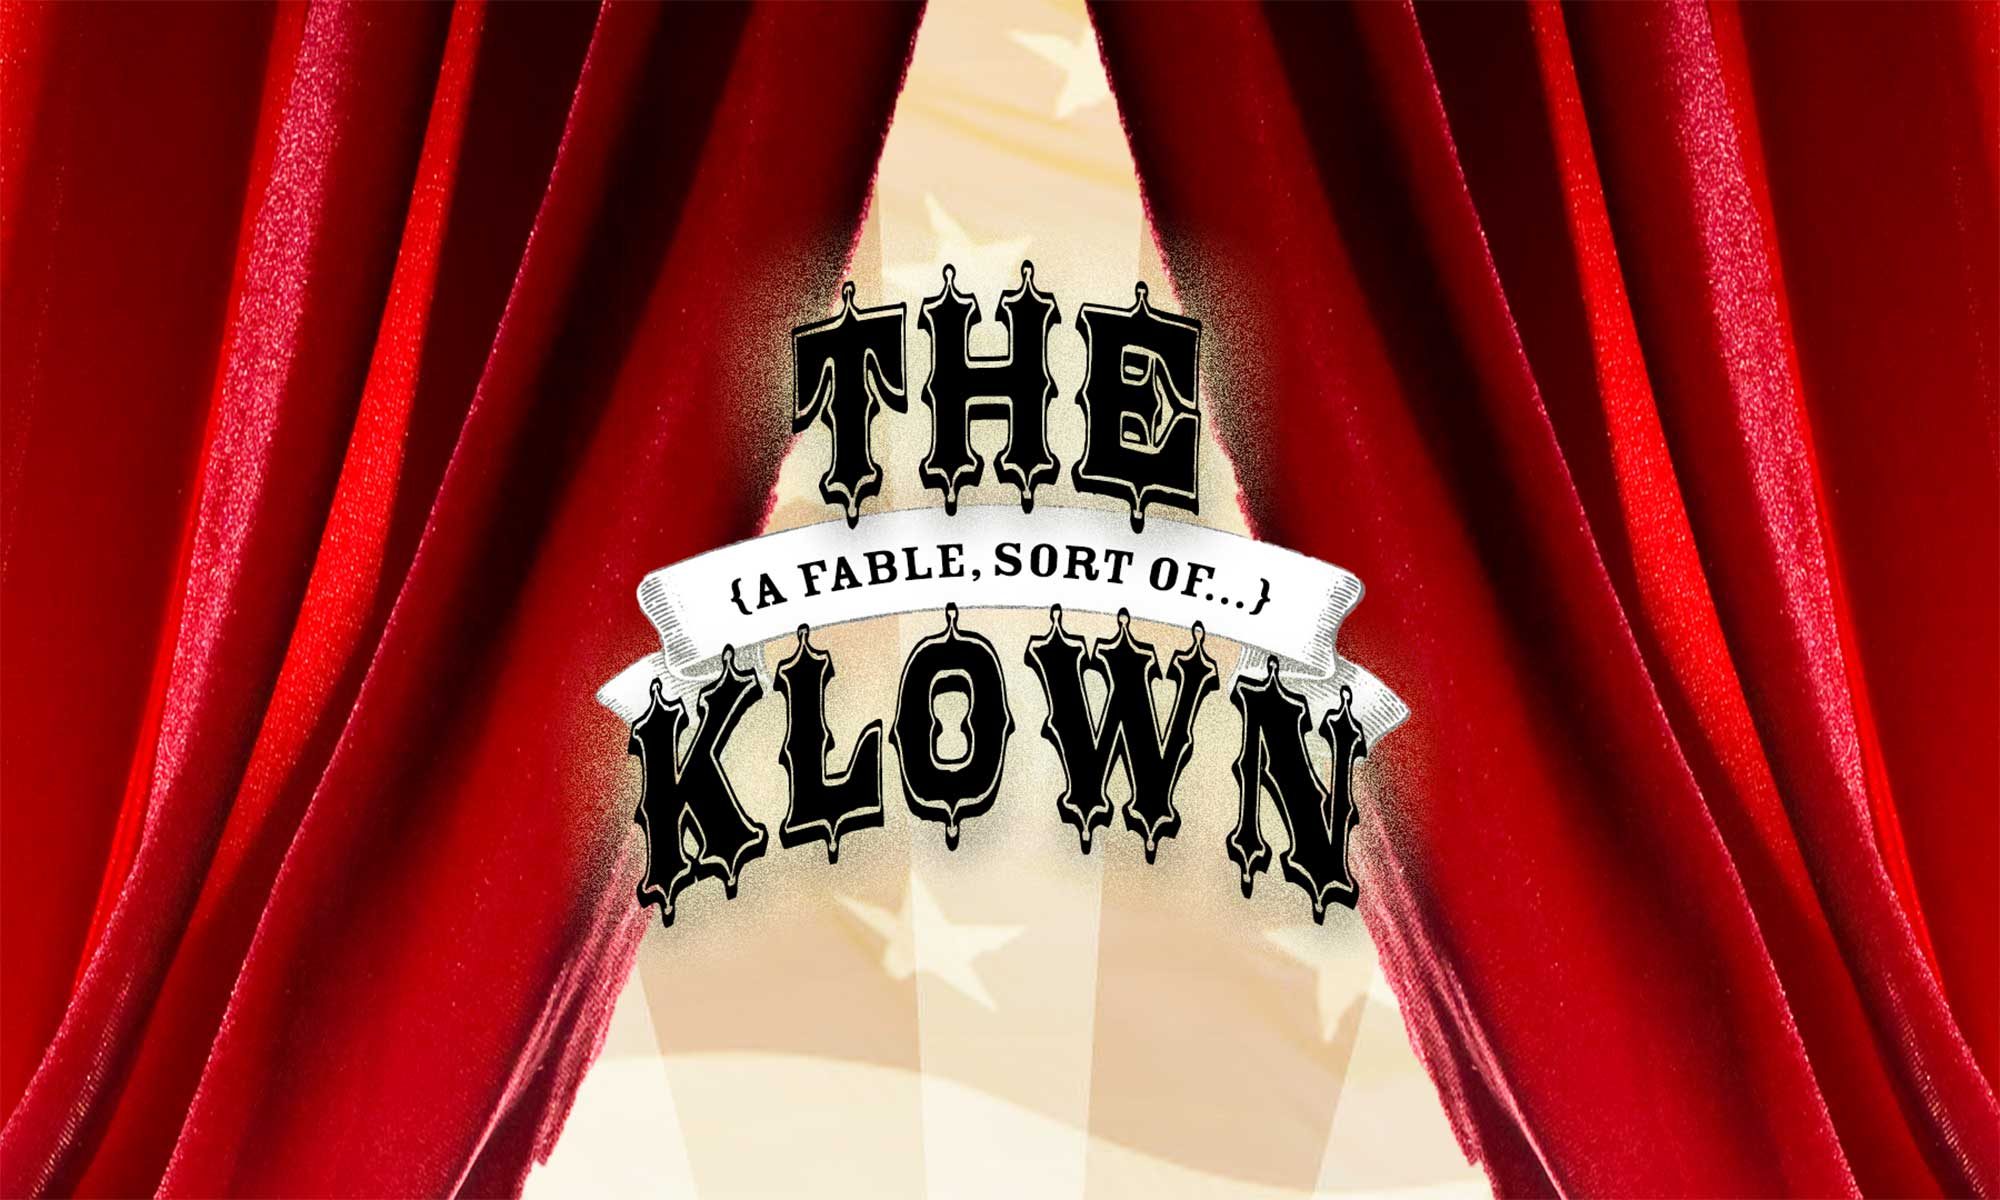 The Klown